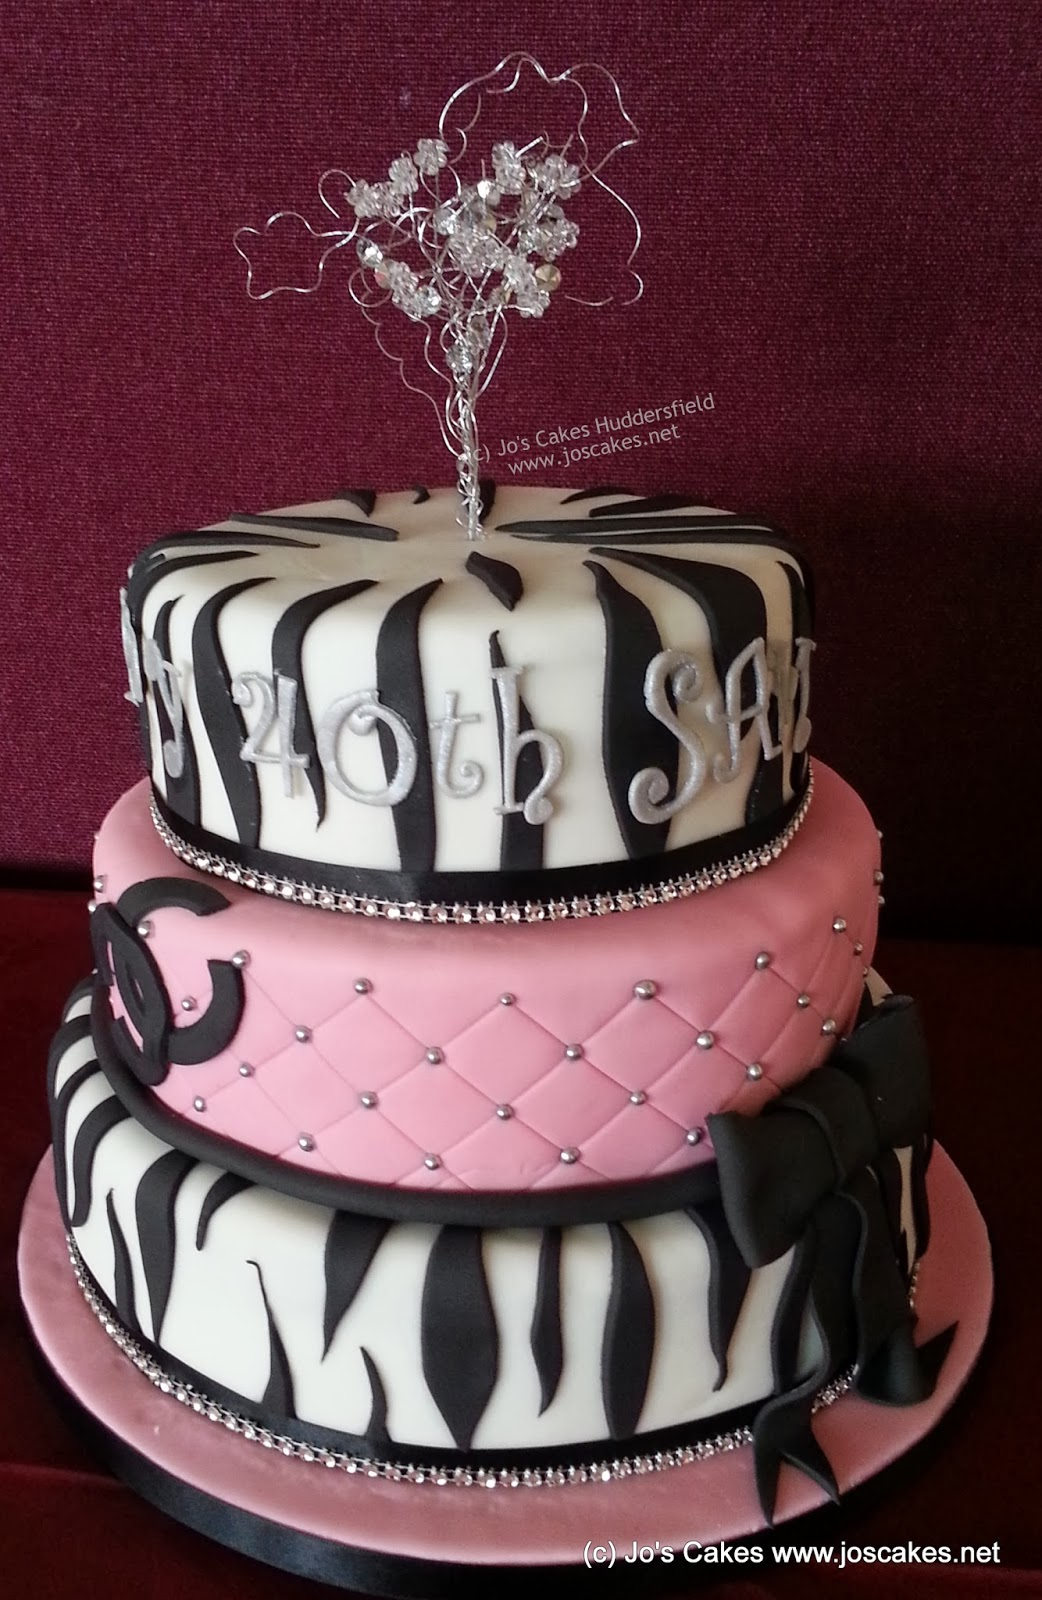 Jos Cakes 3 Tier Zebra And Pink 40th Birthday Cake